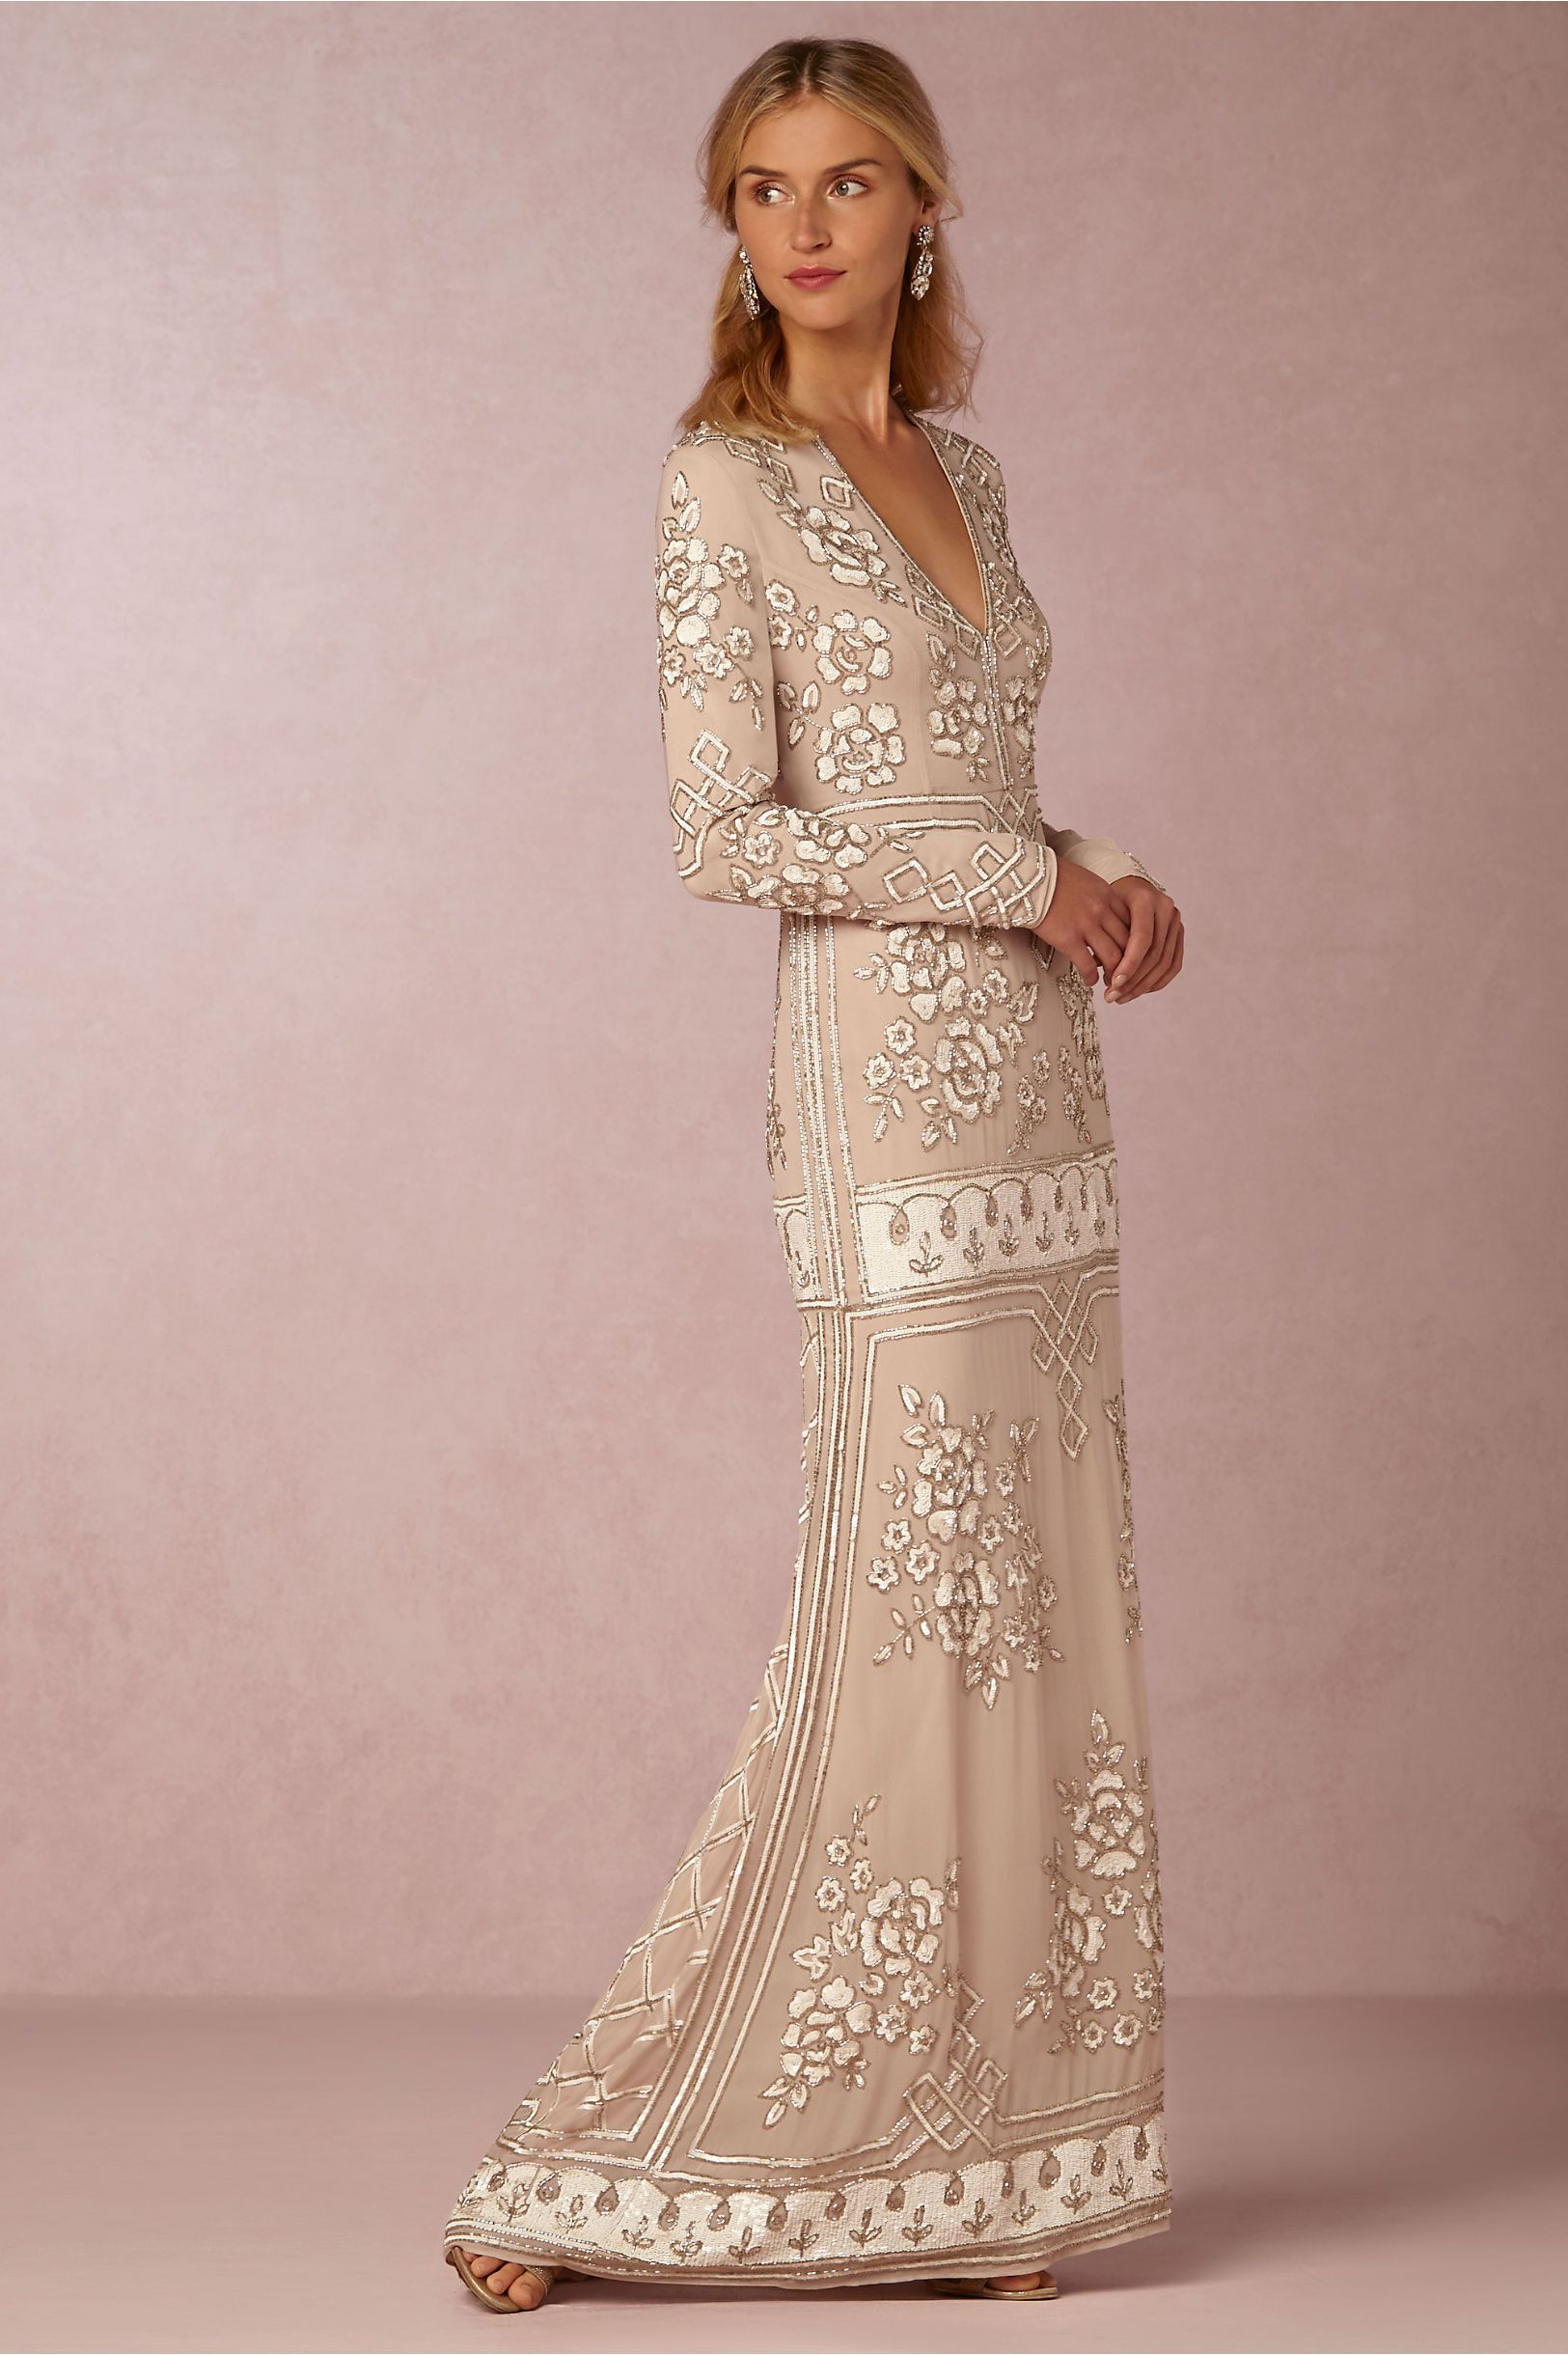 Lake Gown from @BHLDN | Vestidos de noche / bodas | Pinterest ...